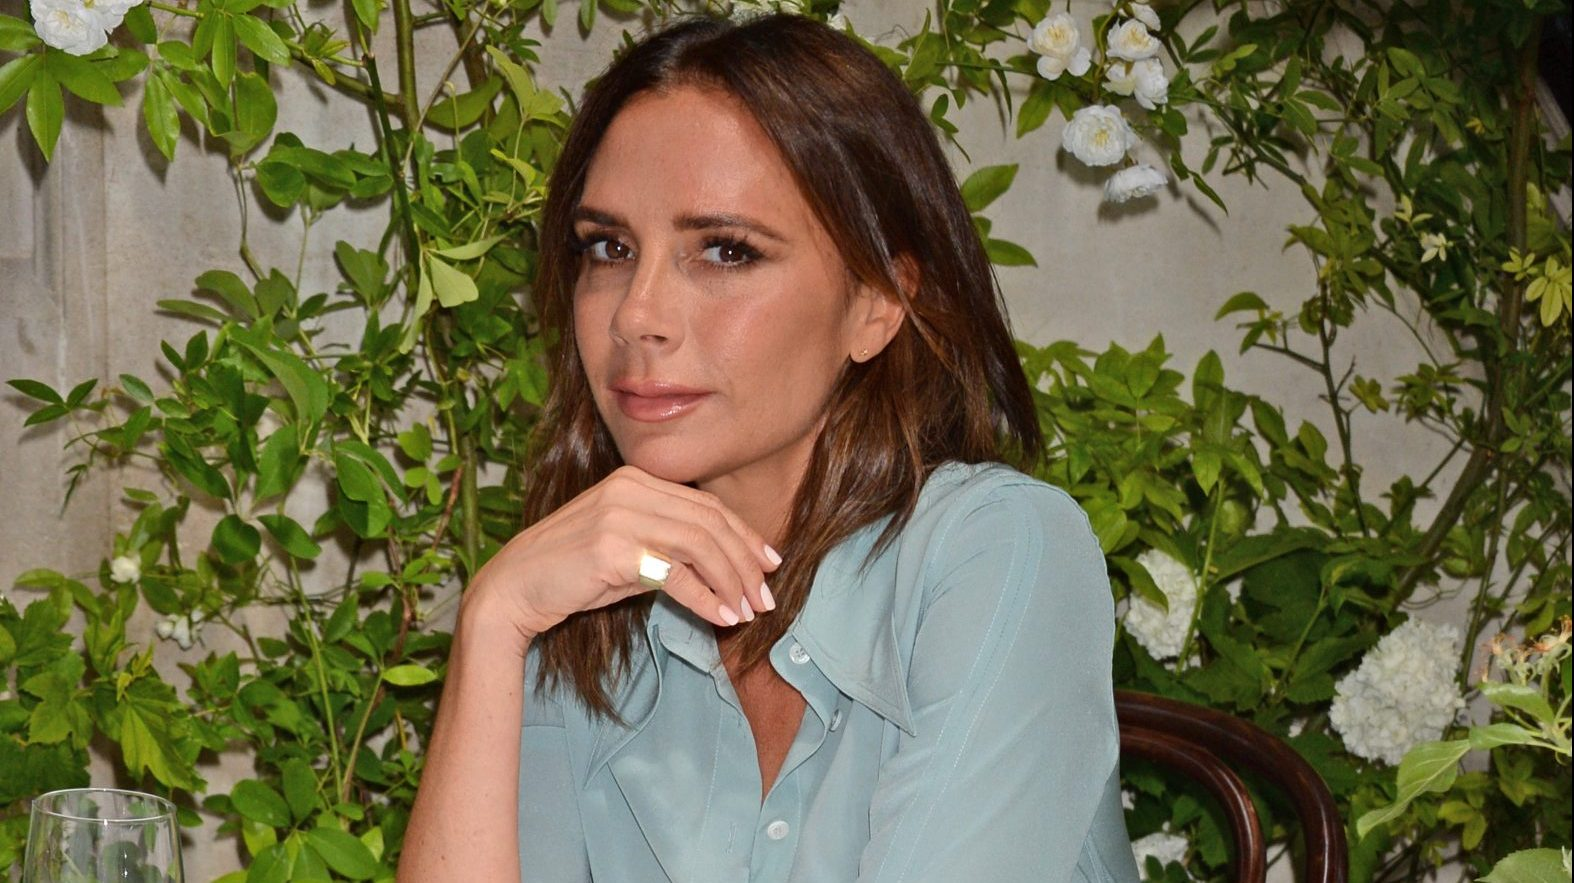 a89b273e74c 25 Times Victoria Beckham Was Effortlessly Cool and Stylish